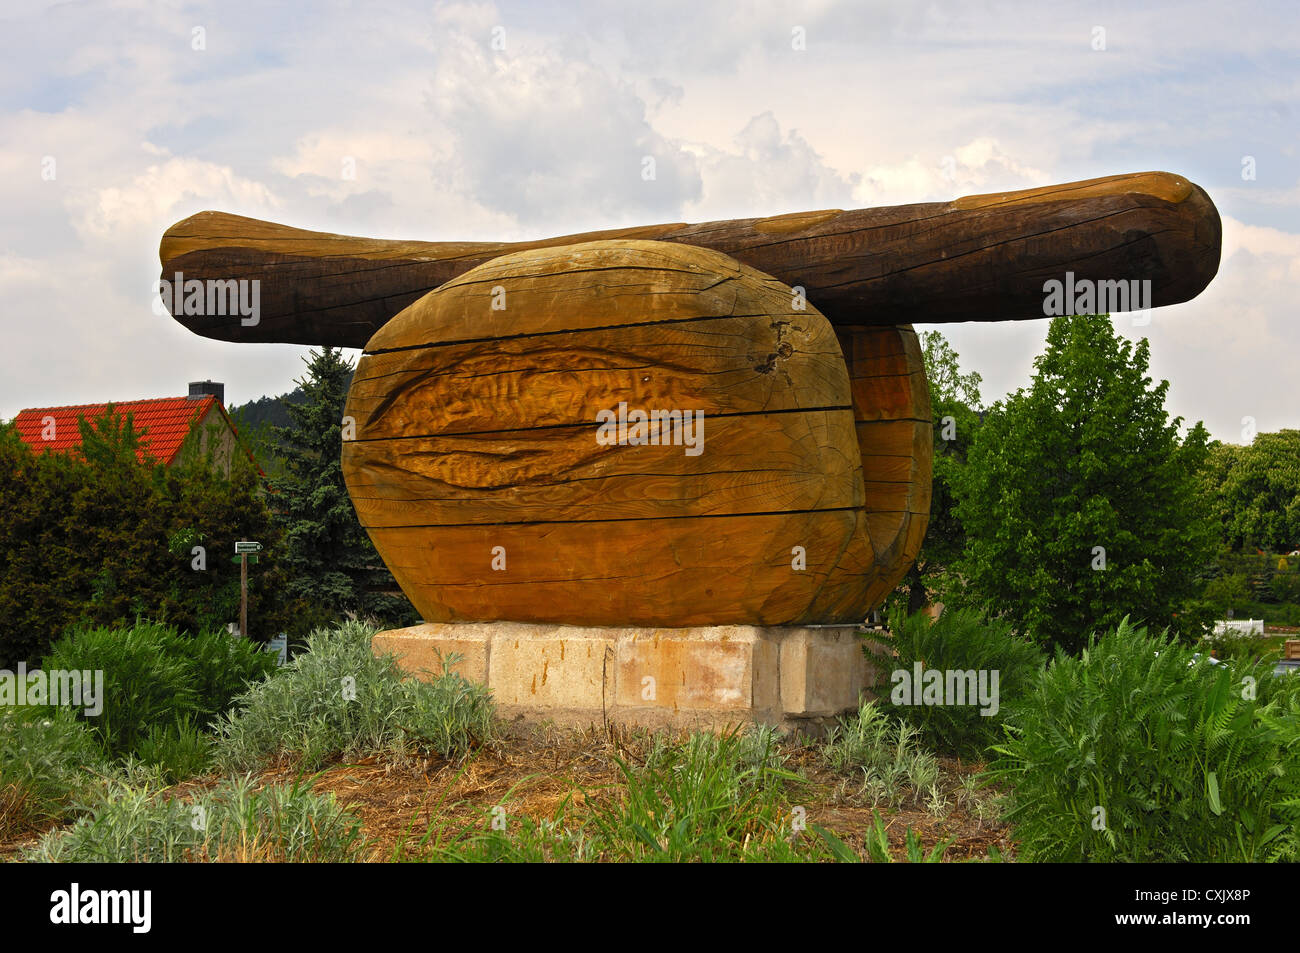 Sculpture of a fried sausage, Germany Stock Photo